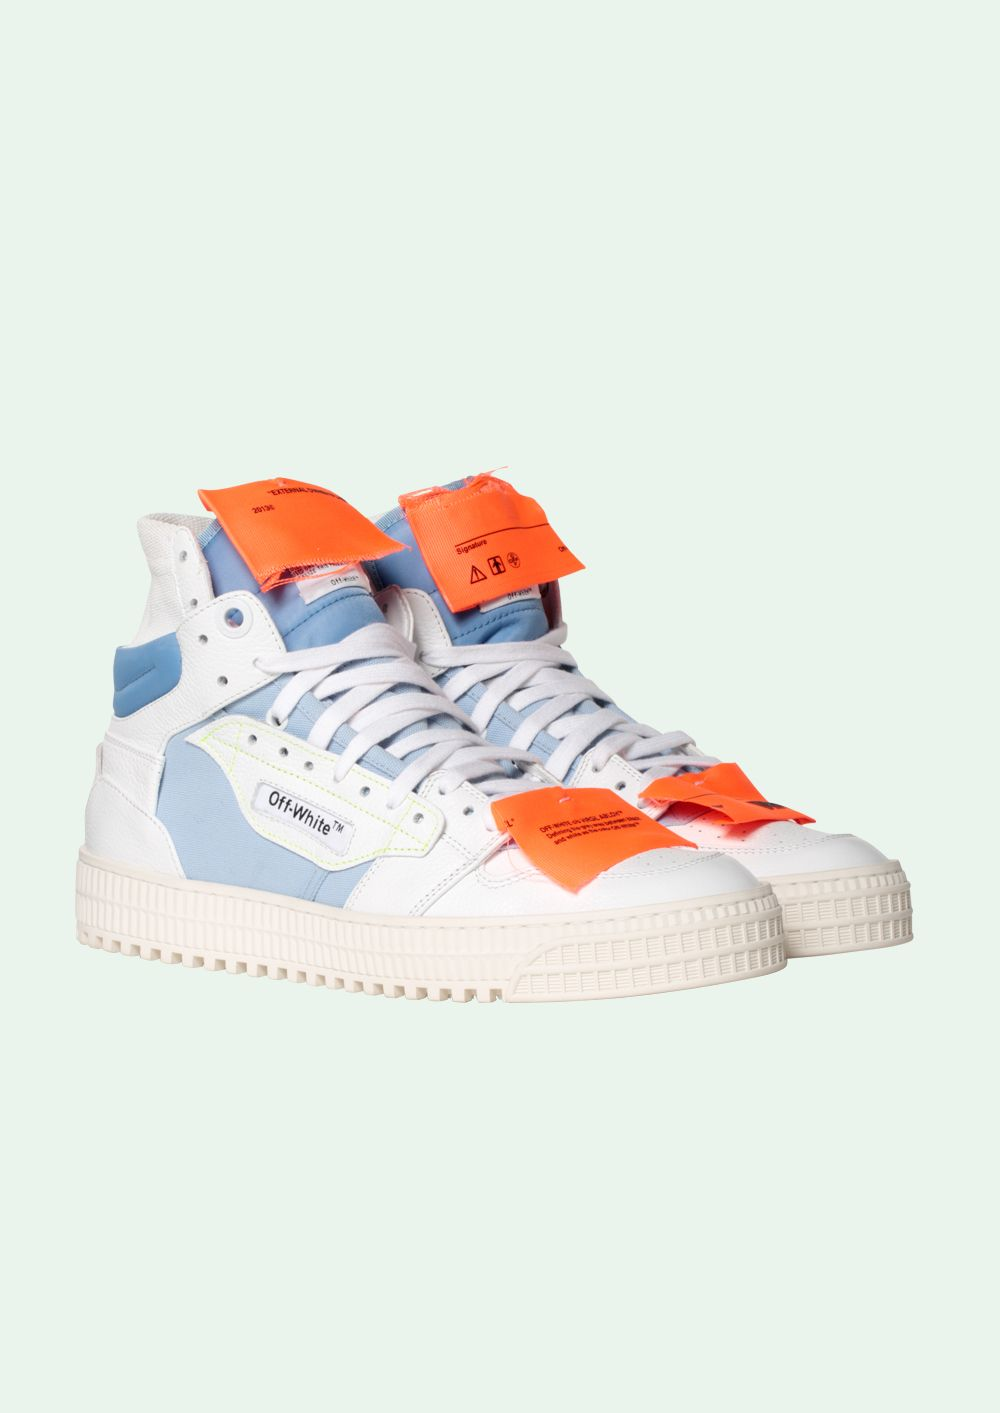 OFF WHITE - Shoes - OffWhite (With